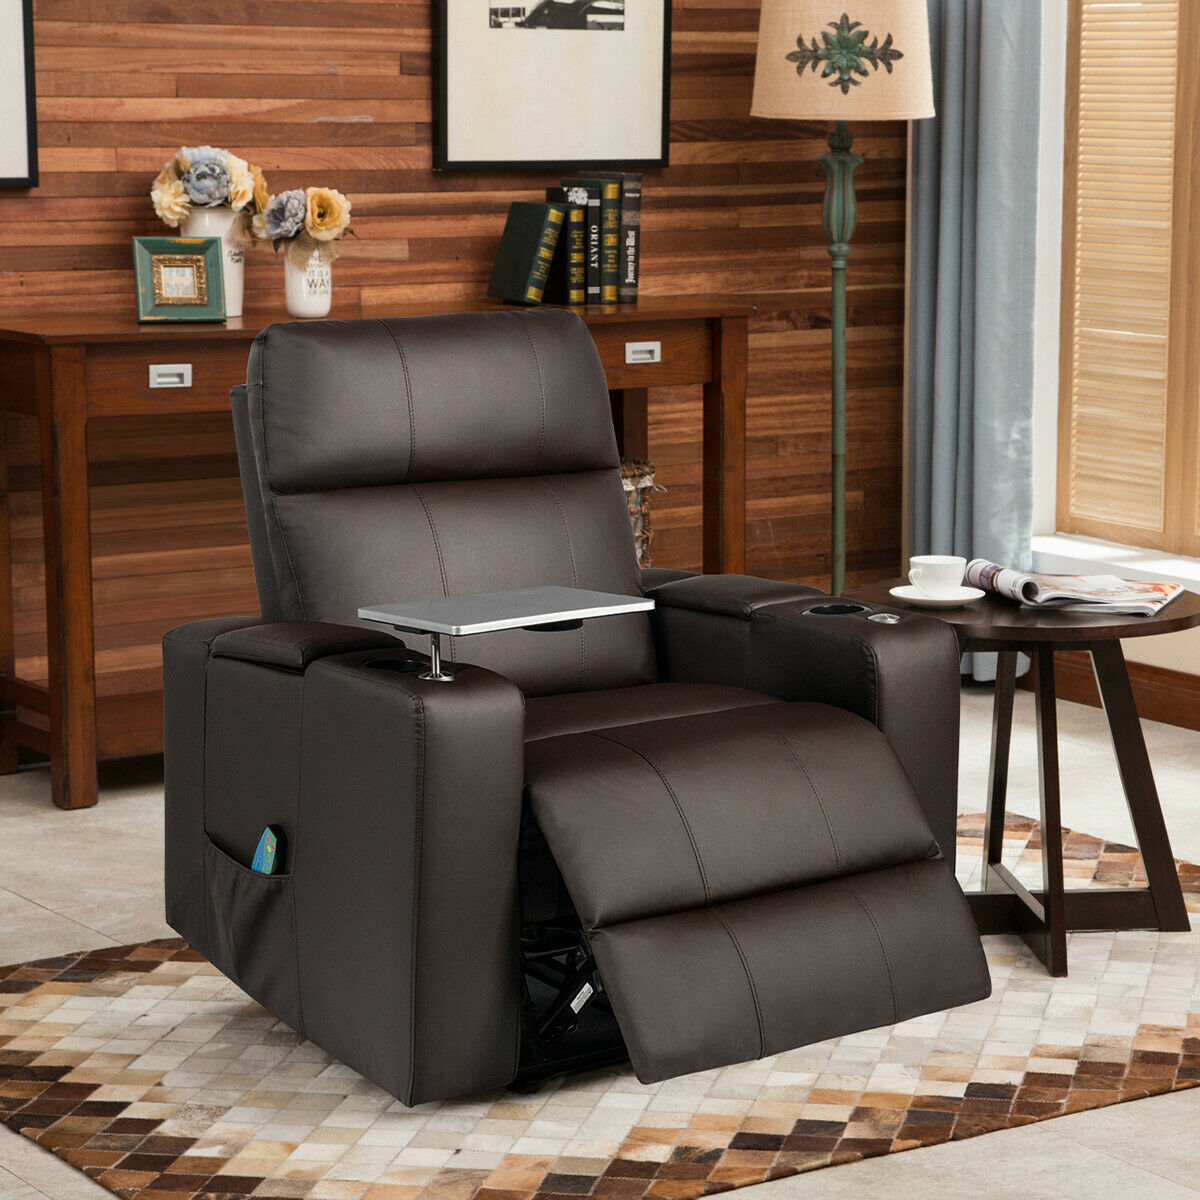 Gymax Massage Theater Recliner...